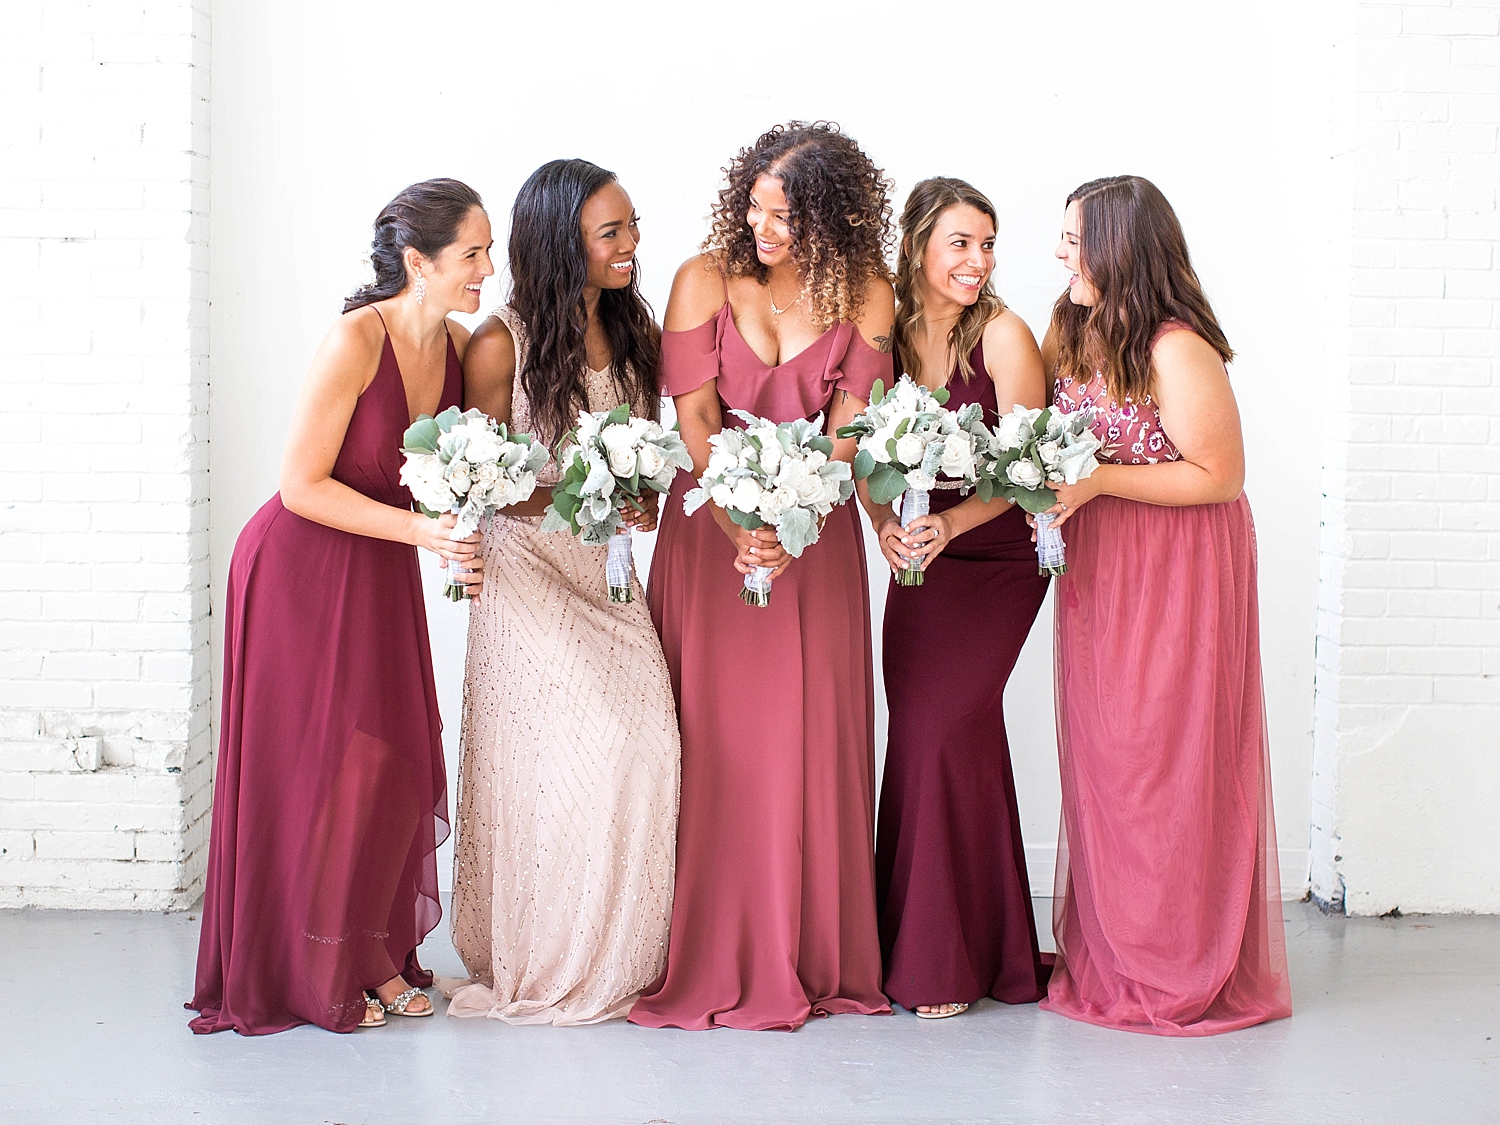 BHLDN Bridesmaids Dresses Campaign Philadelphia New Jersey Wedding Fashion Photography by Kelee Bovelle_0005.jpg